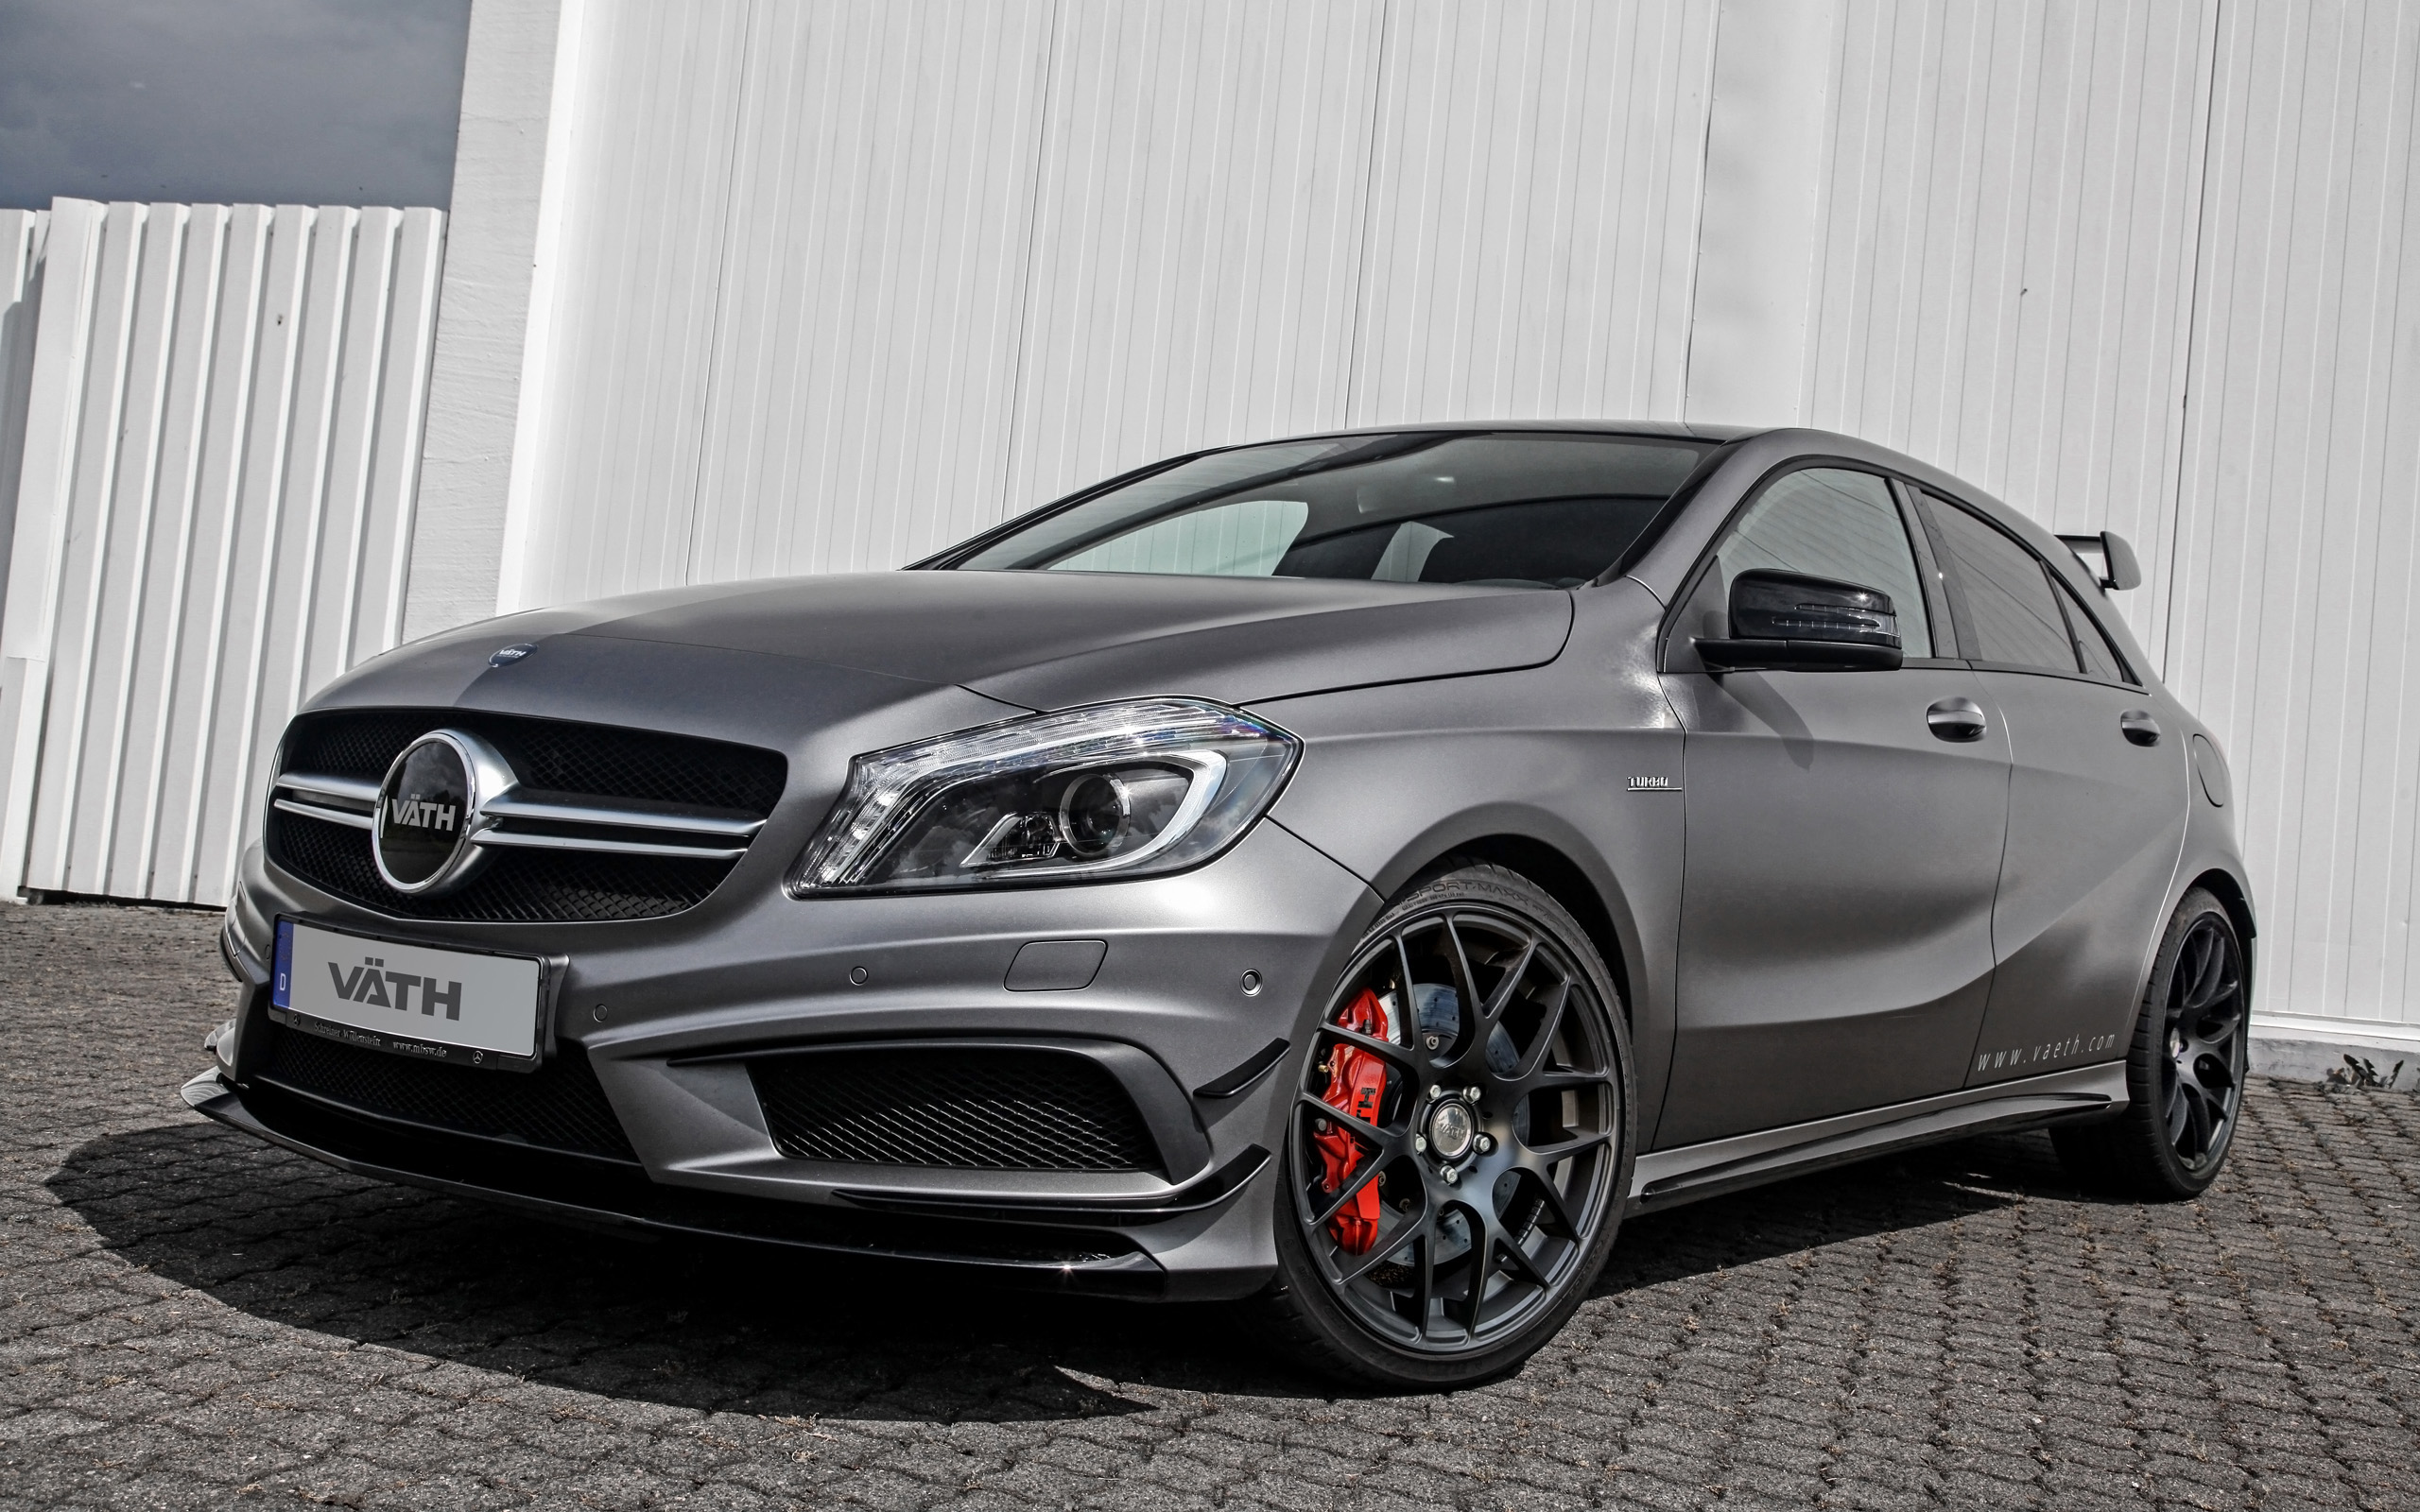 2014 vaeth mercedes benz a45 amg wallpaper hd car. Black Bedroom Furniture Sets. Home Design Ideas